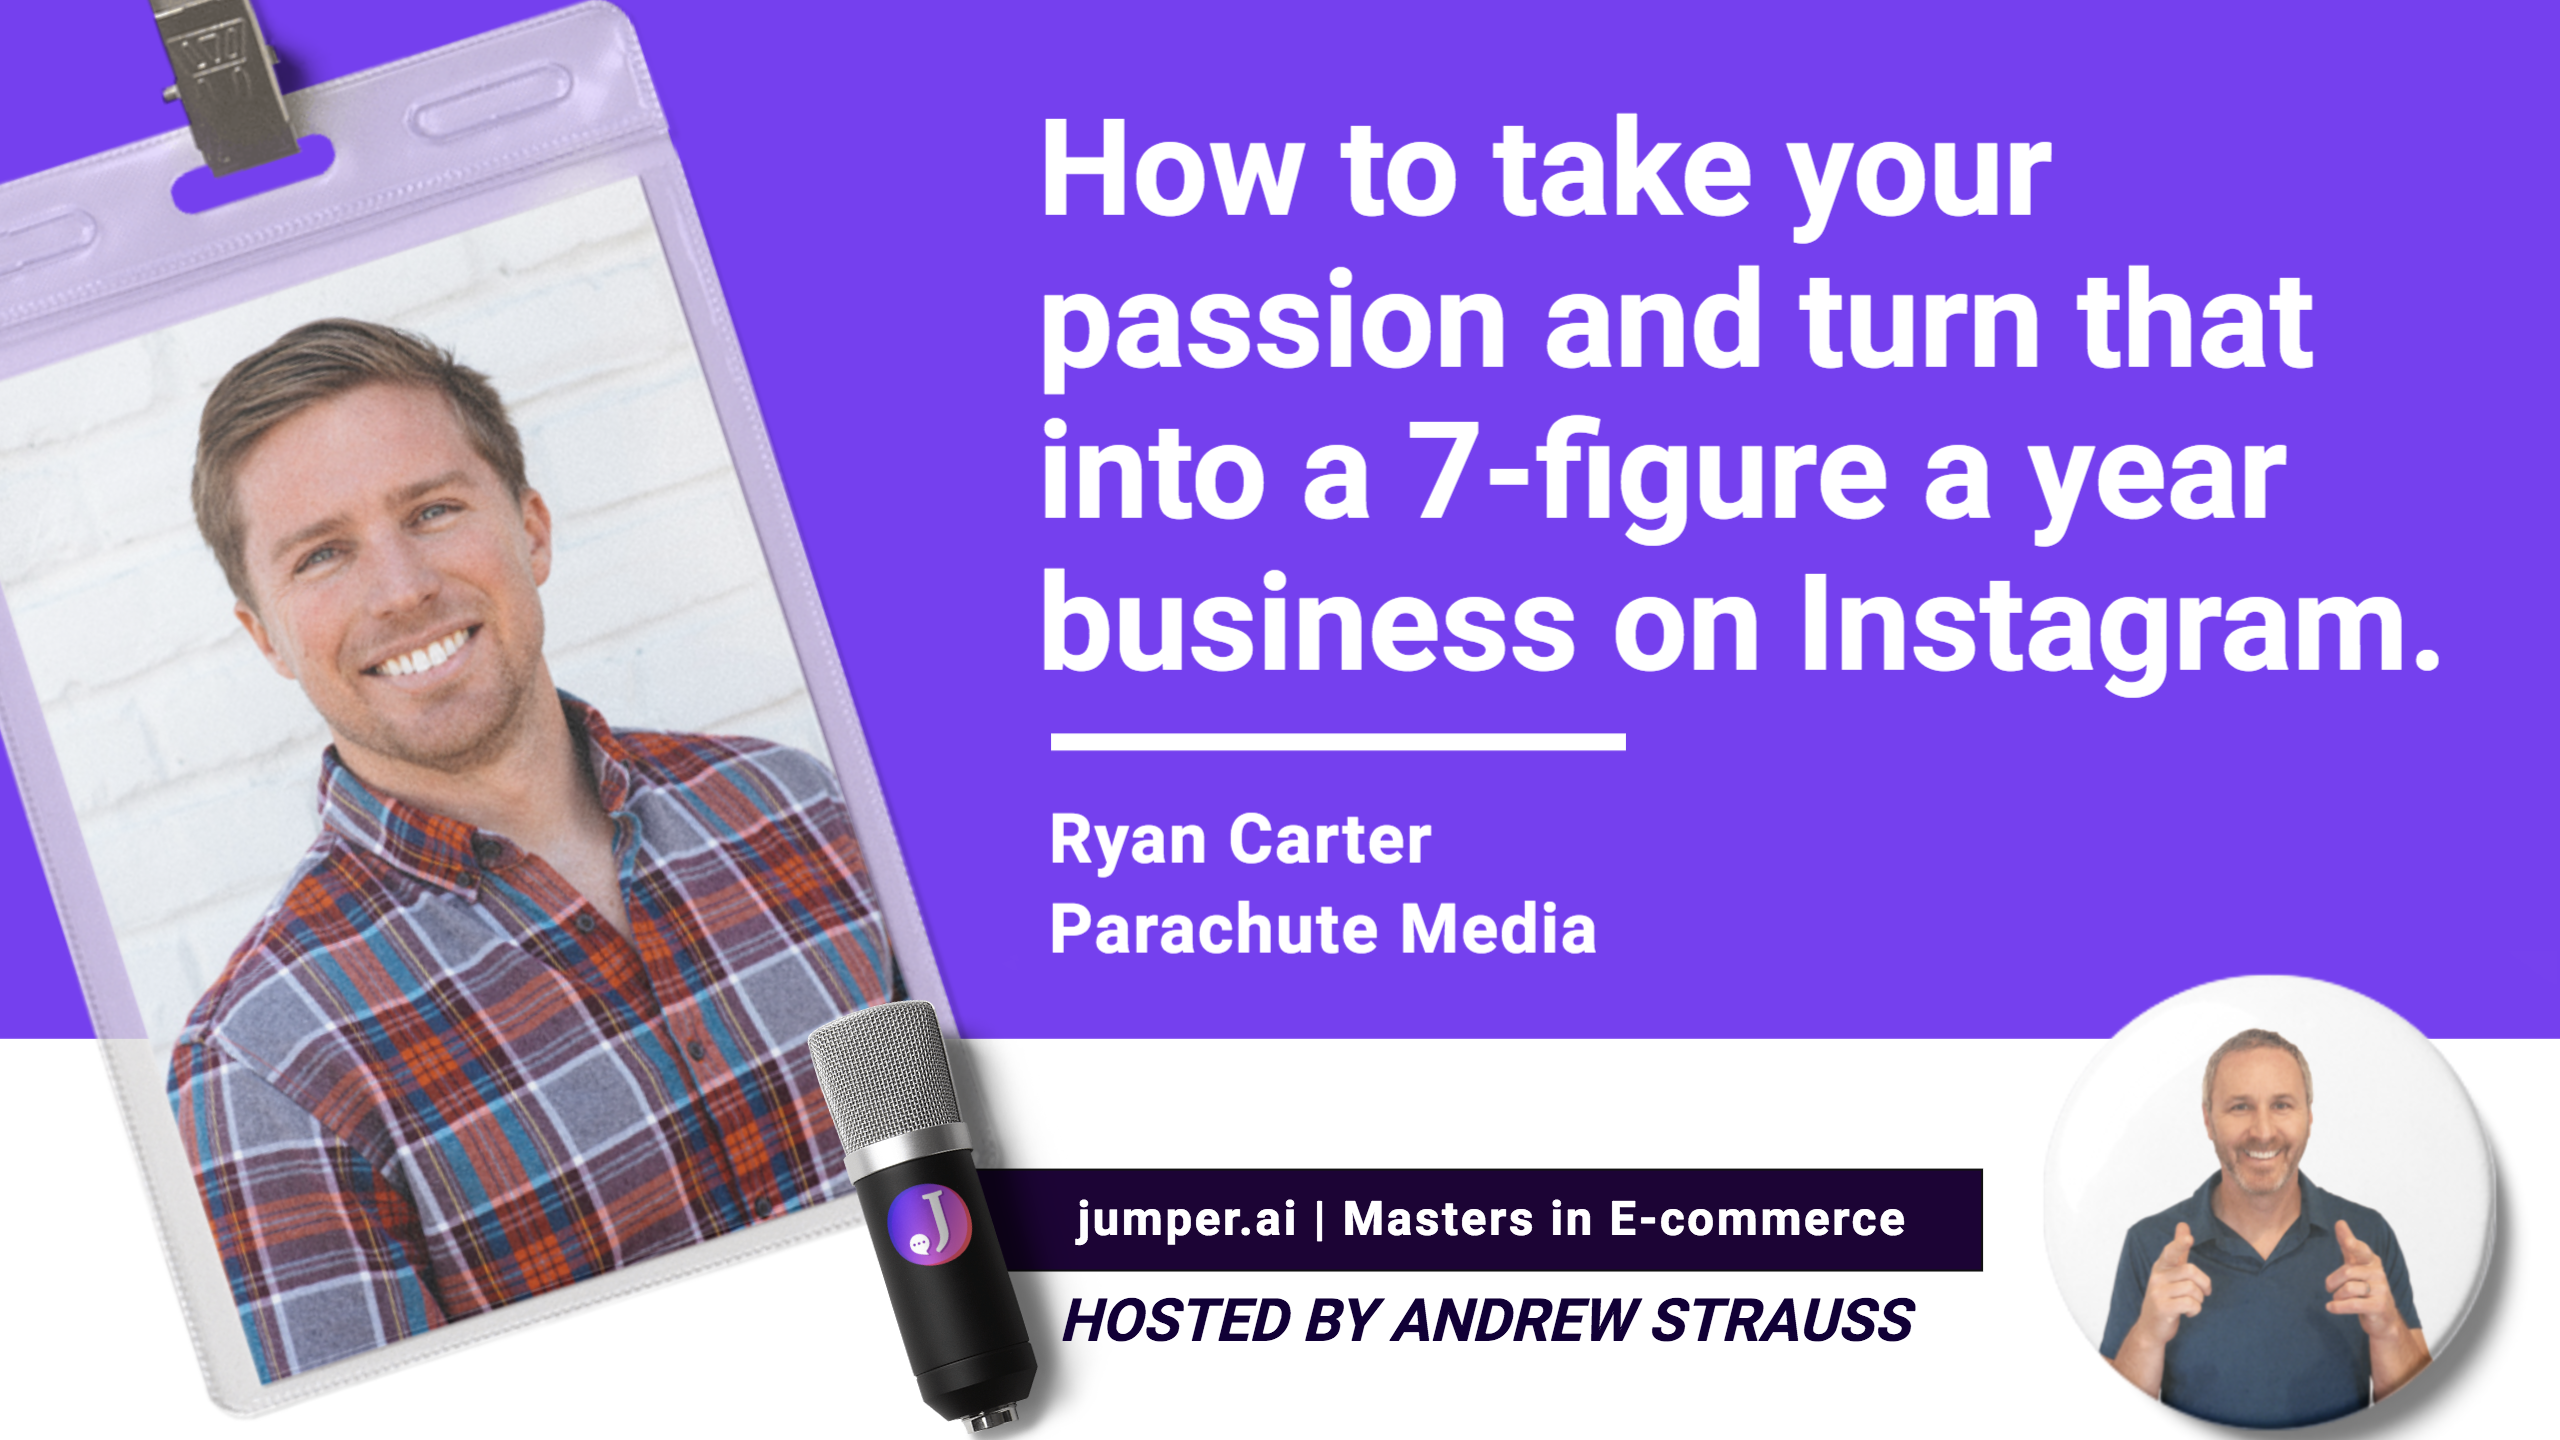 Vidcast #11 : Ryan Carter of Parachute Media on How to Turn Your Passion into a 7-figure Business on Instagram